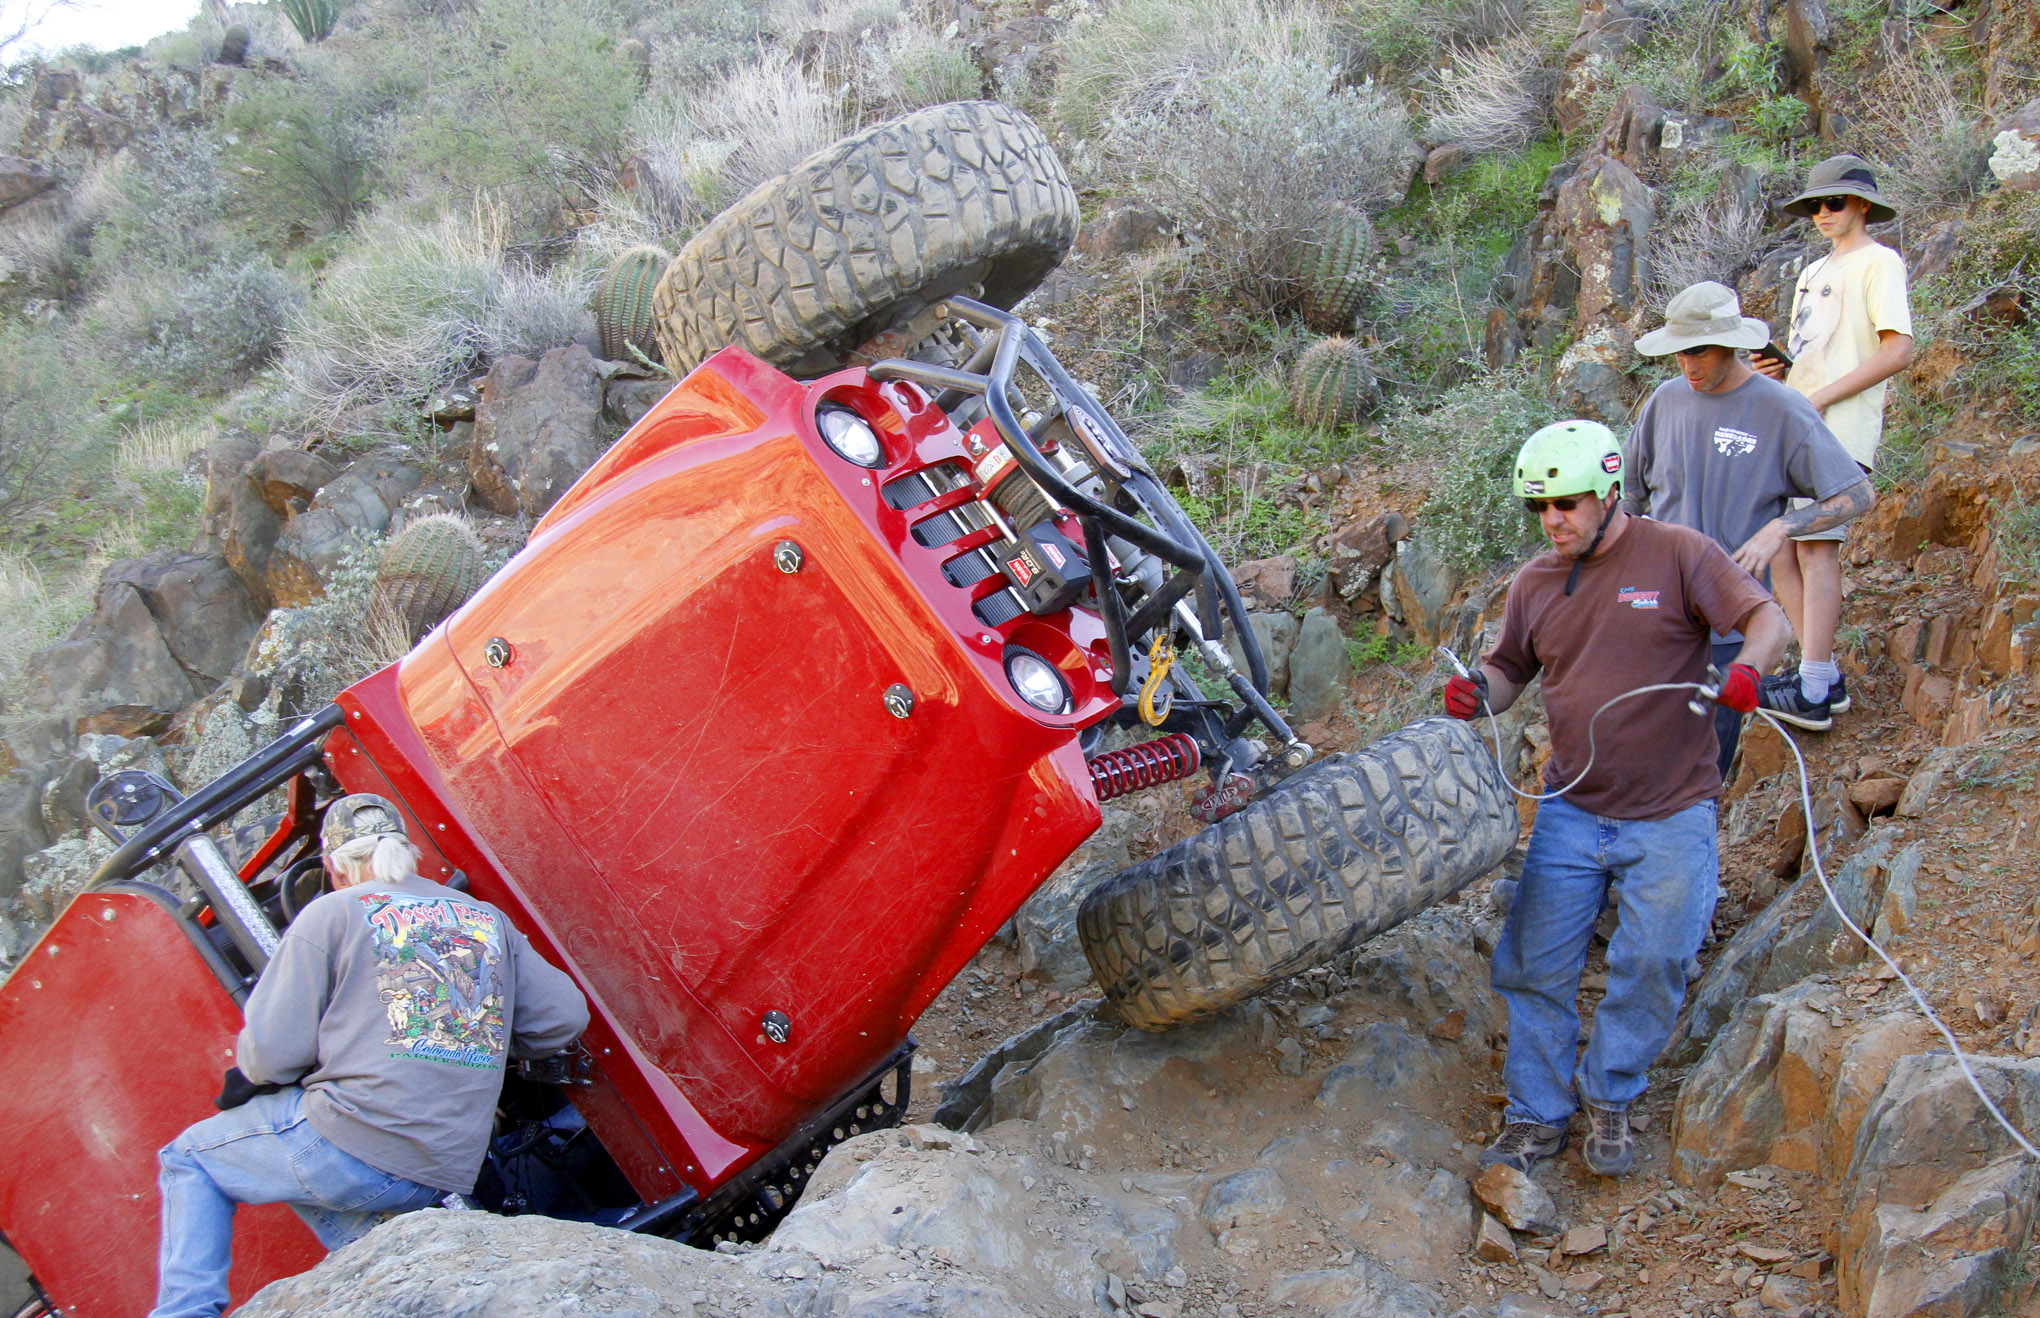 Greg and Stacey Johnson were playing on one of the side obstacles on Lower Terminator when gravity conspired to flop their Jimmy's 4WD buggy. A winch rescue ensued, and they were shortly back on all four tires to resume playing on the big-boy obstacles.